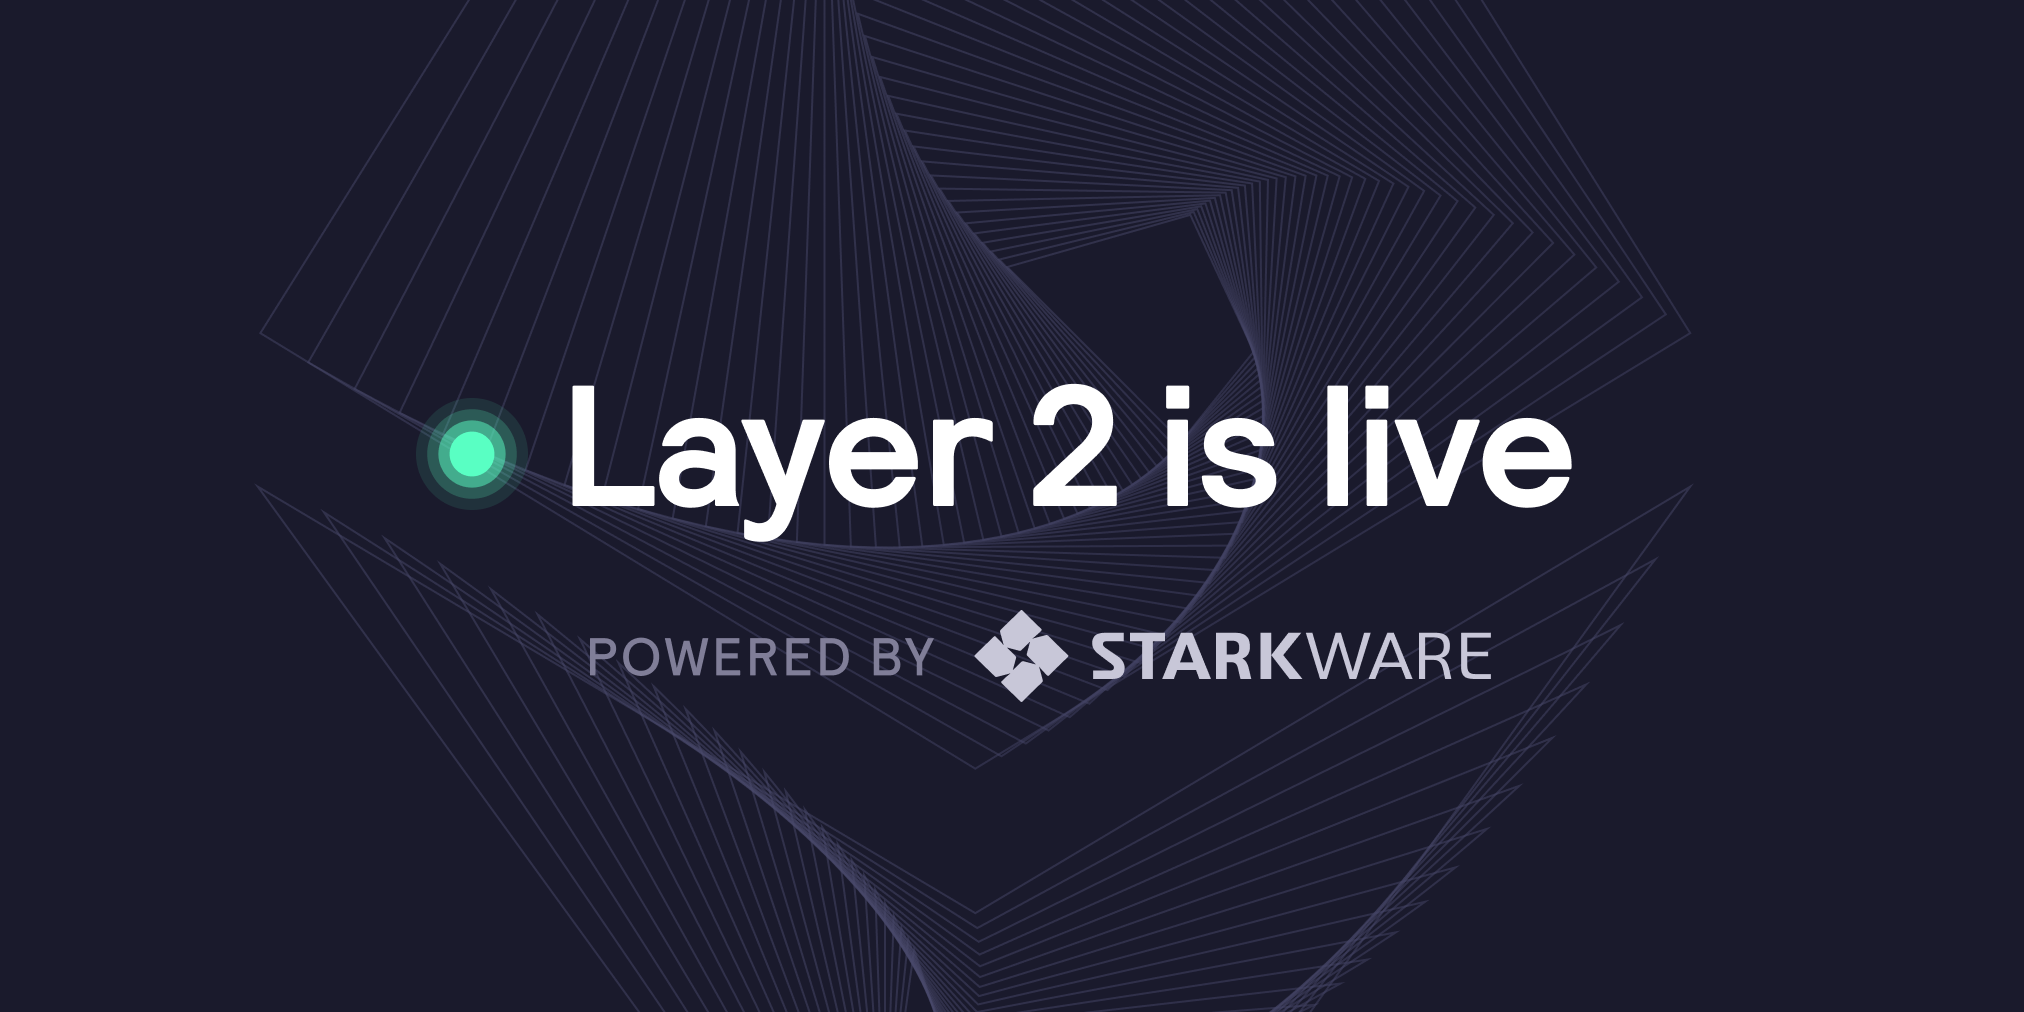 Trade now on Layer 2